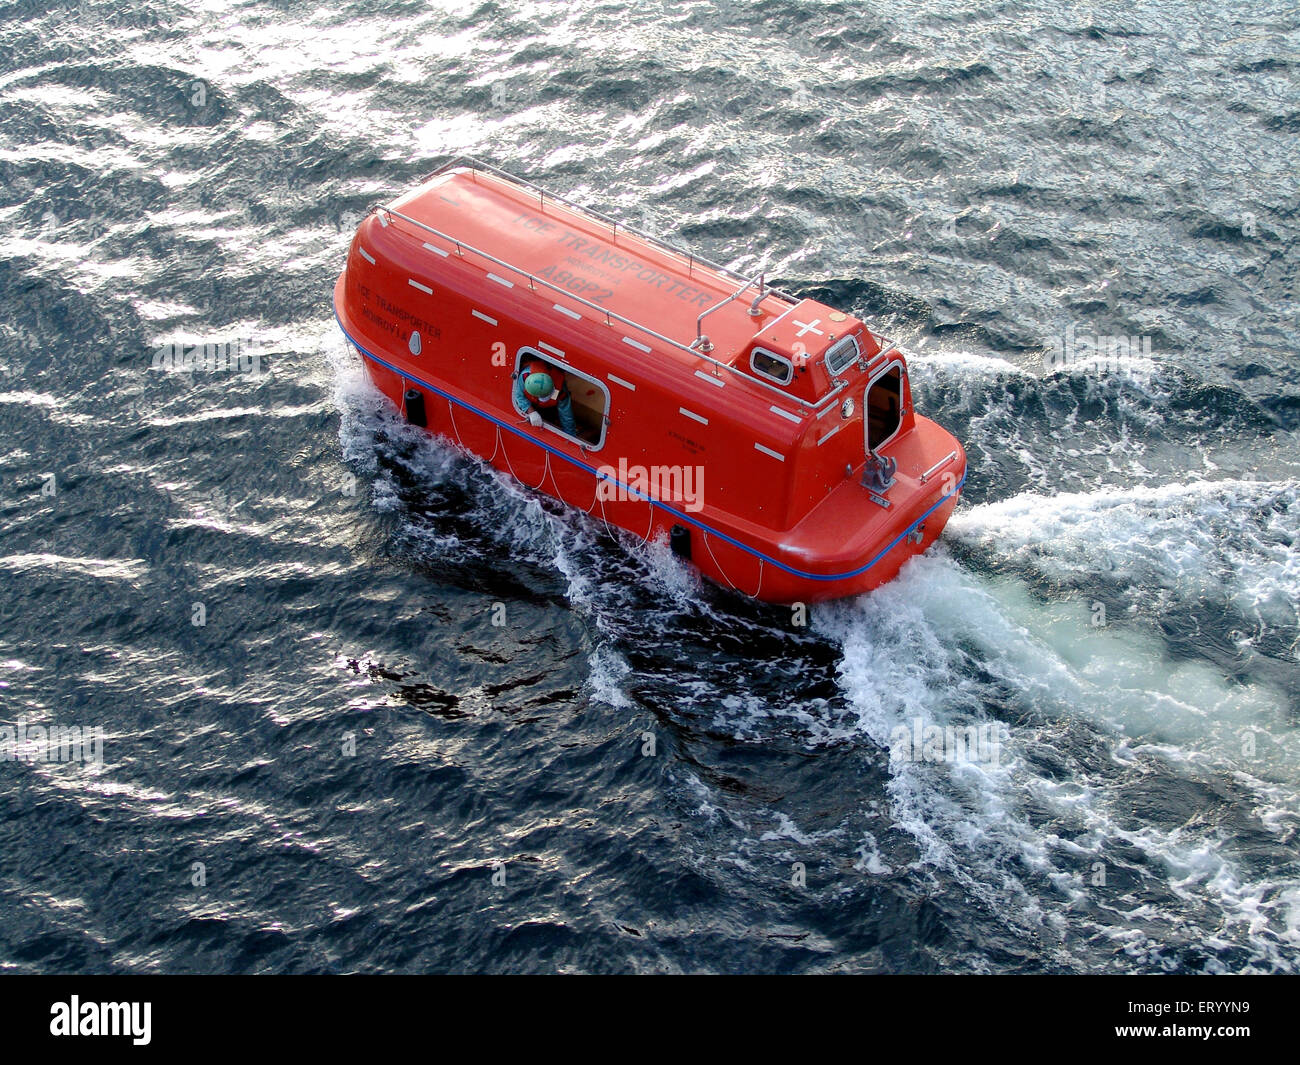 Lifeboat at sealife saving appliances in merchant vessel - Stock Image